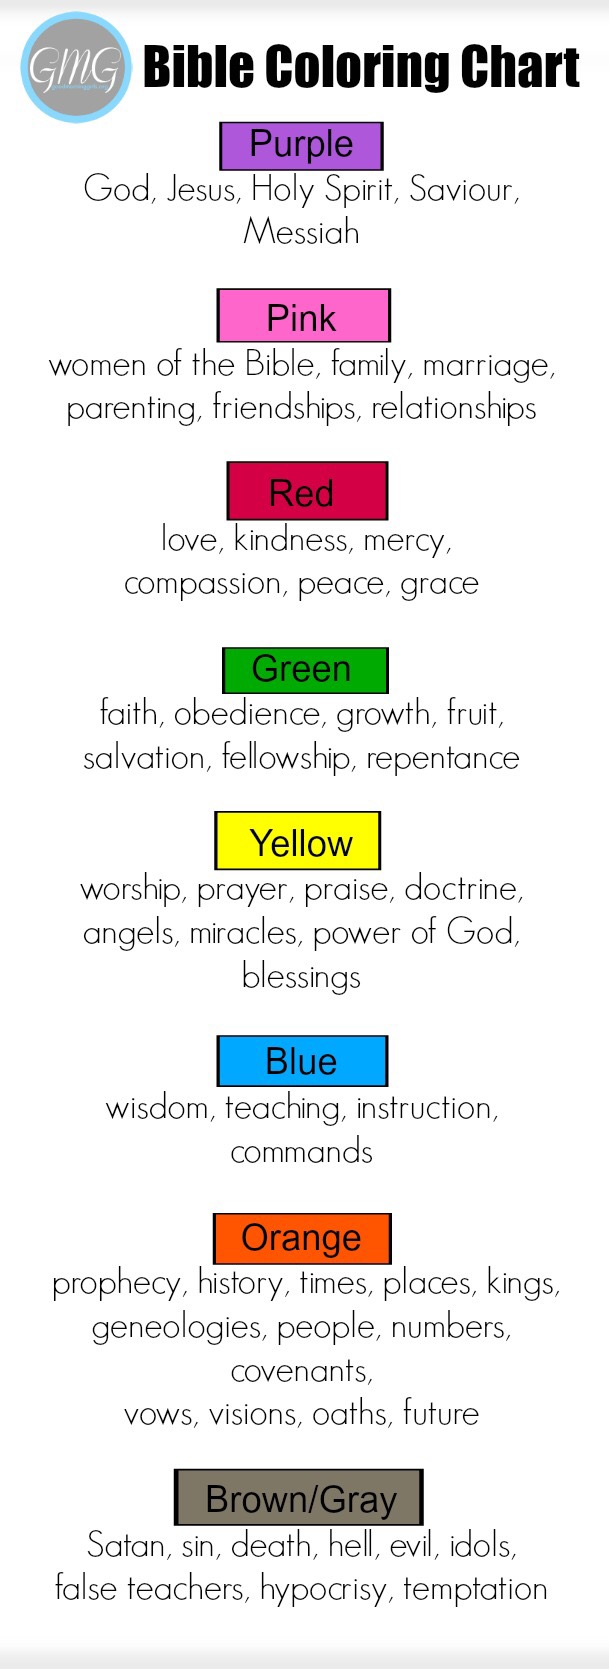 Uncategorized Homiletics Worksheet romans summer bible study laura jane barber the blog on fridays or at some point during weekend we will do homiletics if you dont know what that is heres a crash course with worksheet